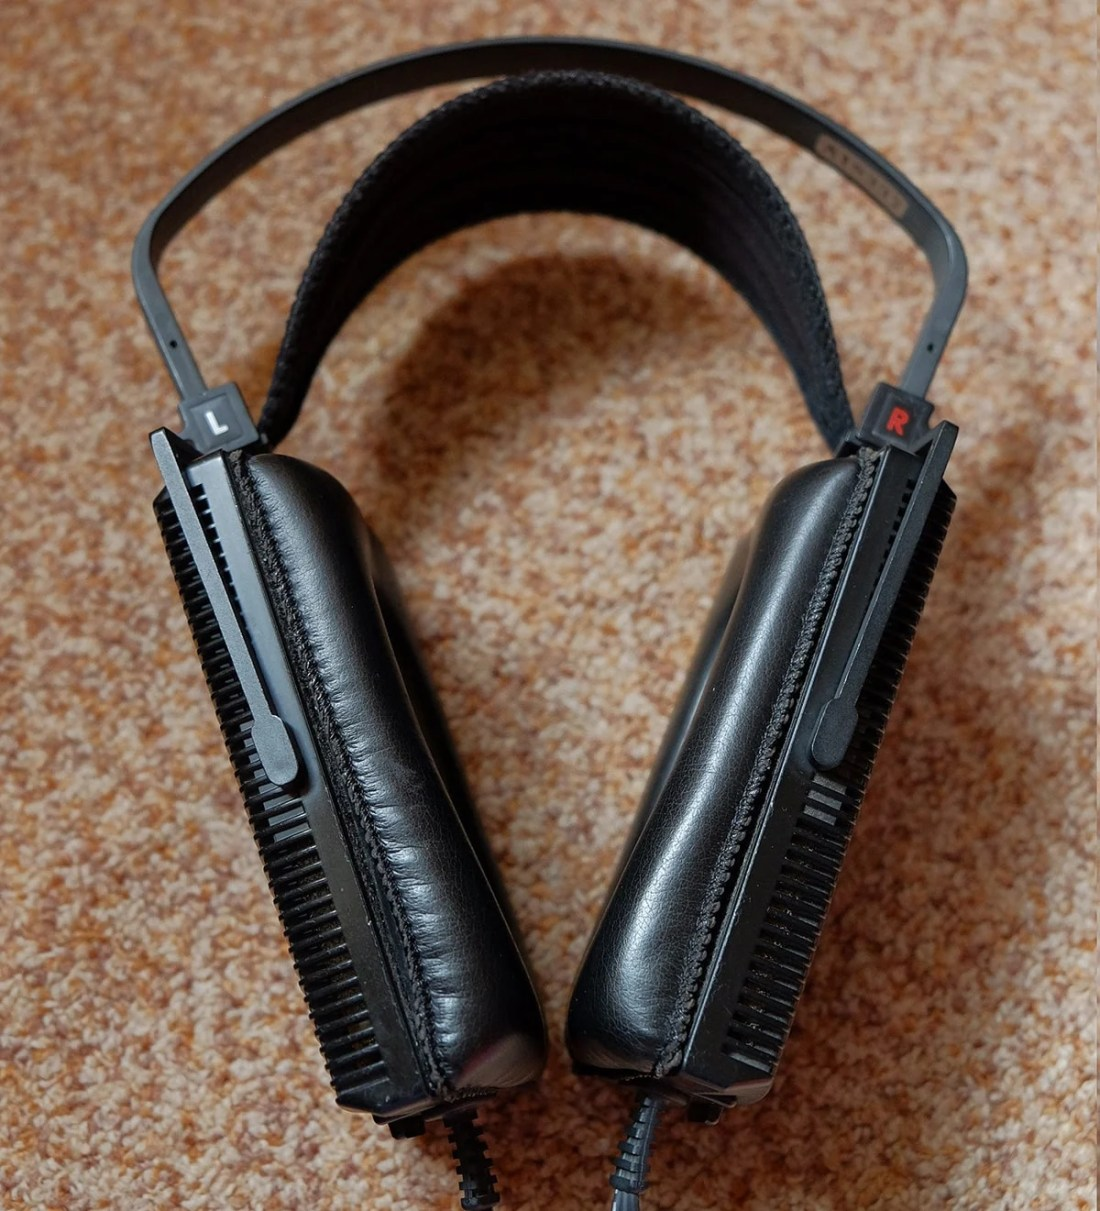 The pleather ear pads are thicker on the bottom to help for a better seal